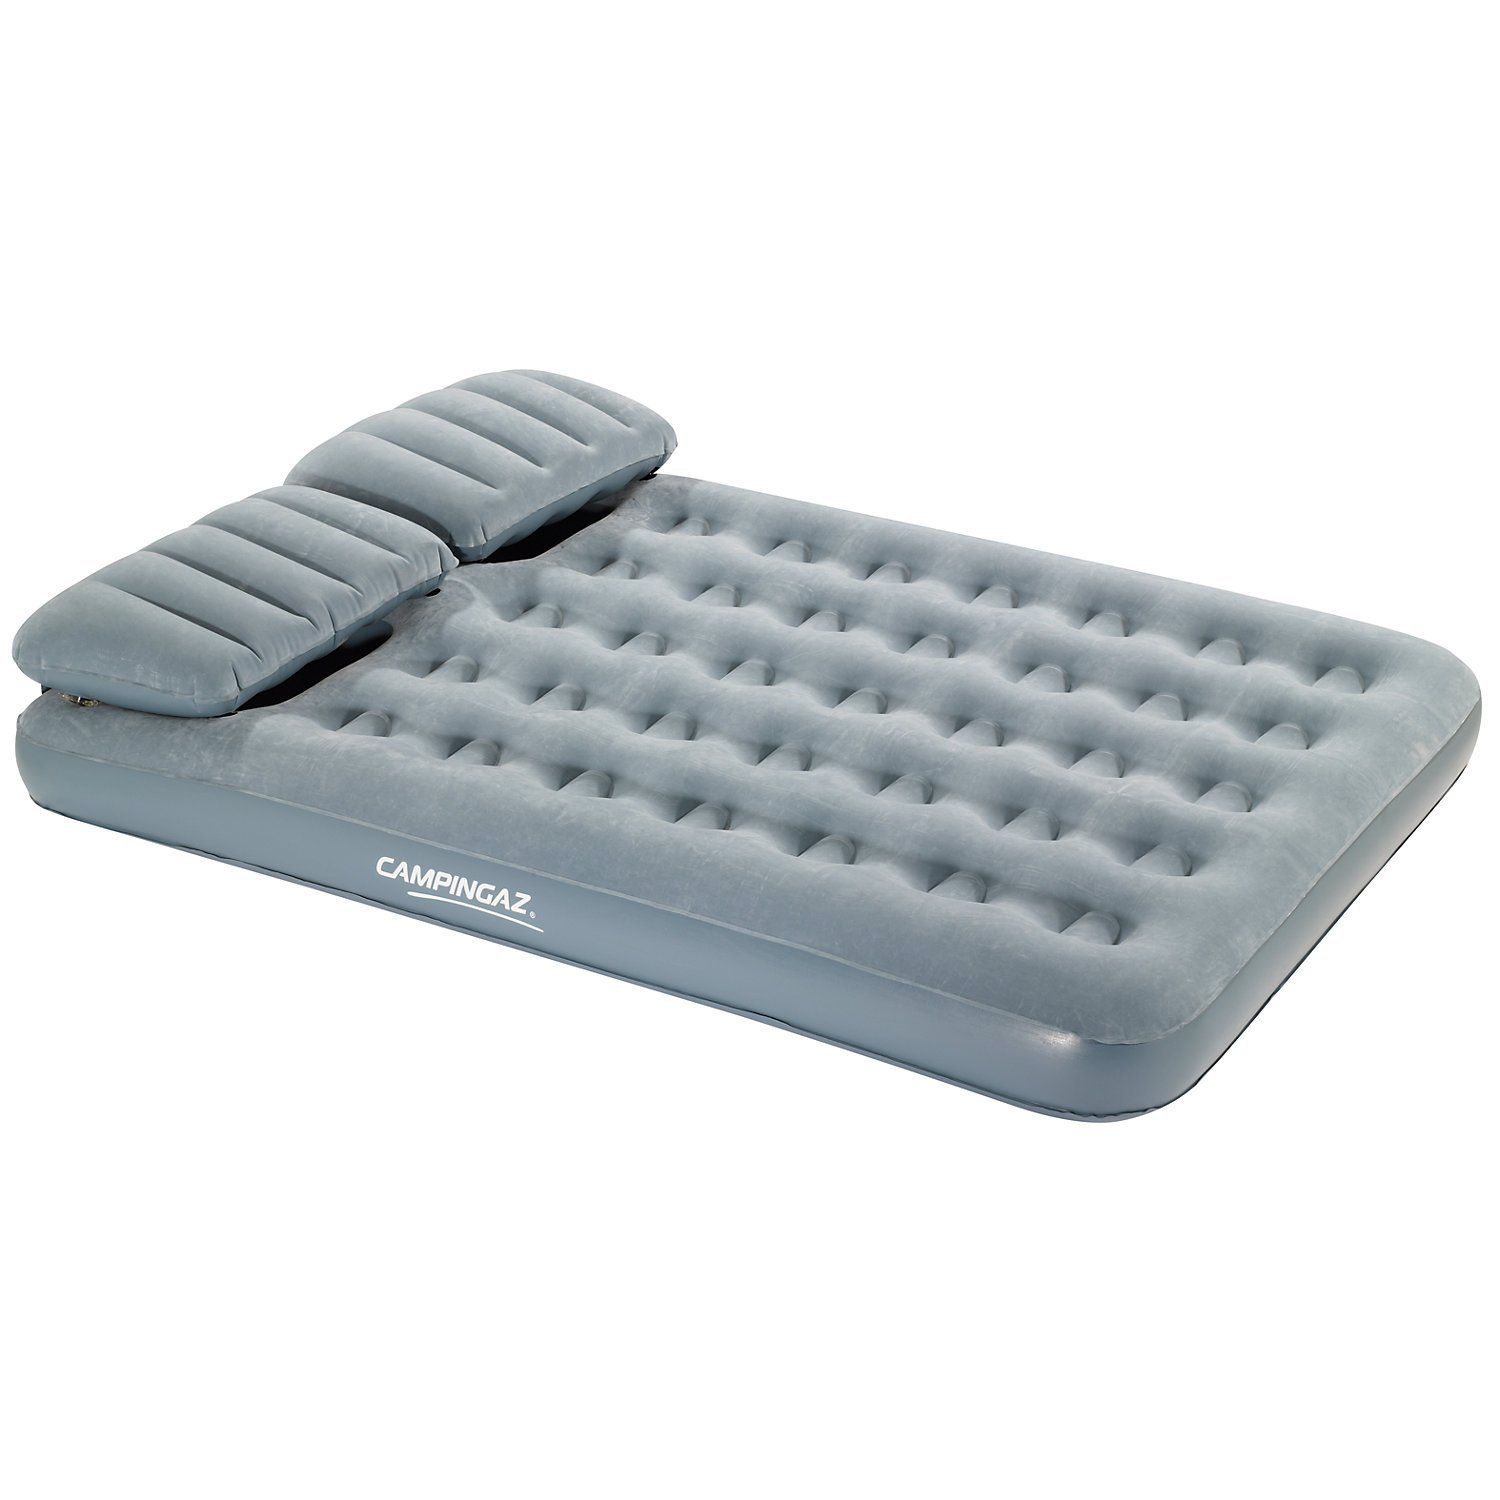 matelas gonflable 2 personnes les prix et mod les sportoza. Black Bedroom Furniture Sets. Home Design Ideas